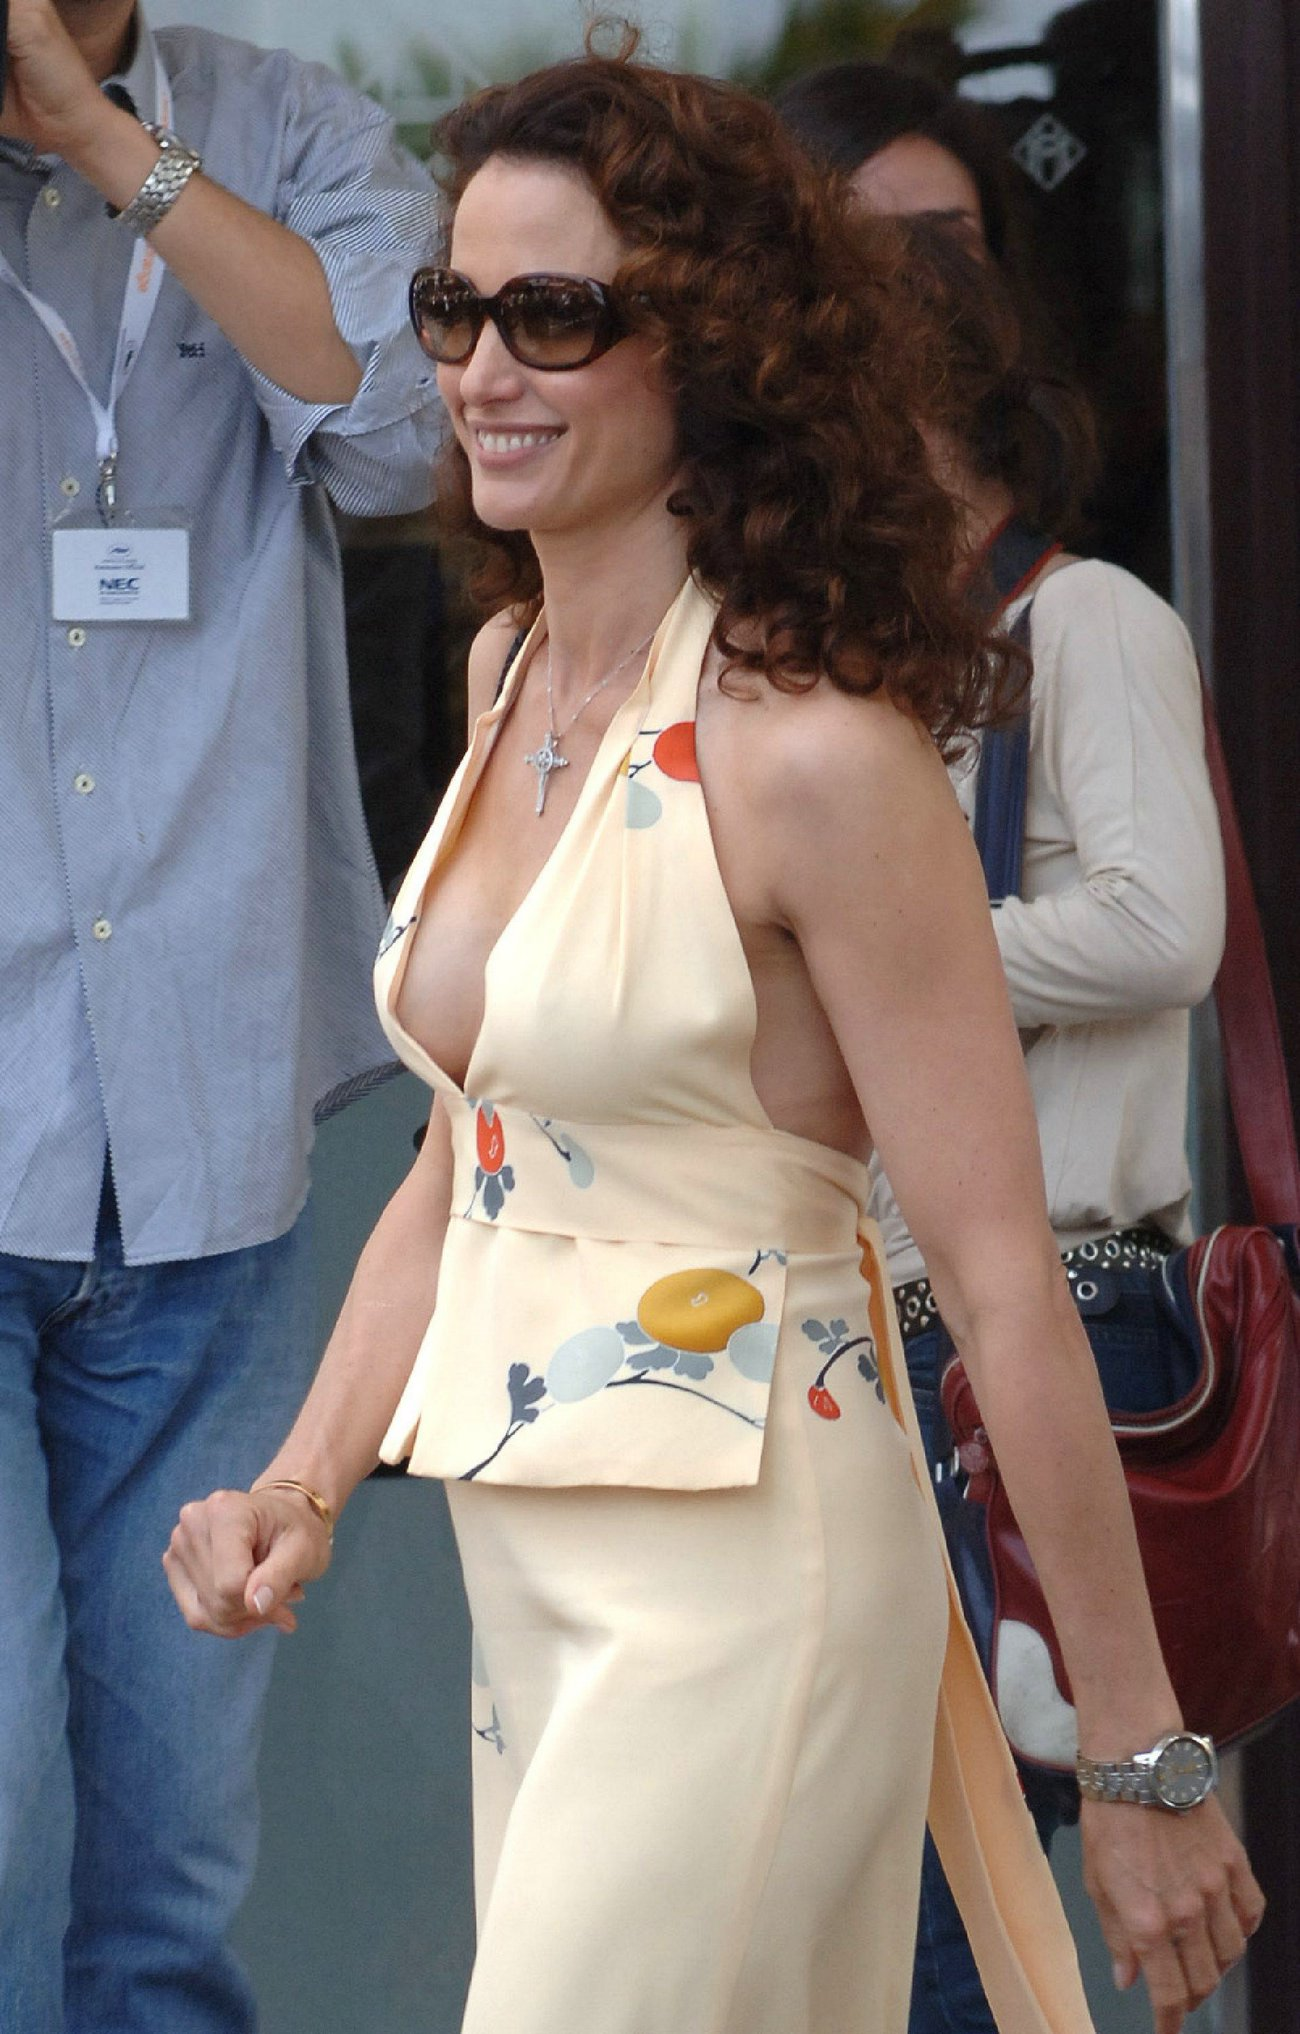 Andie macdowell nude pics, page